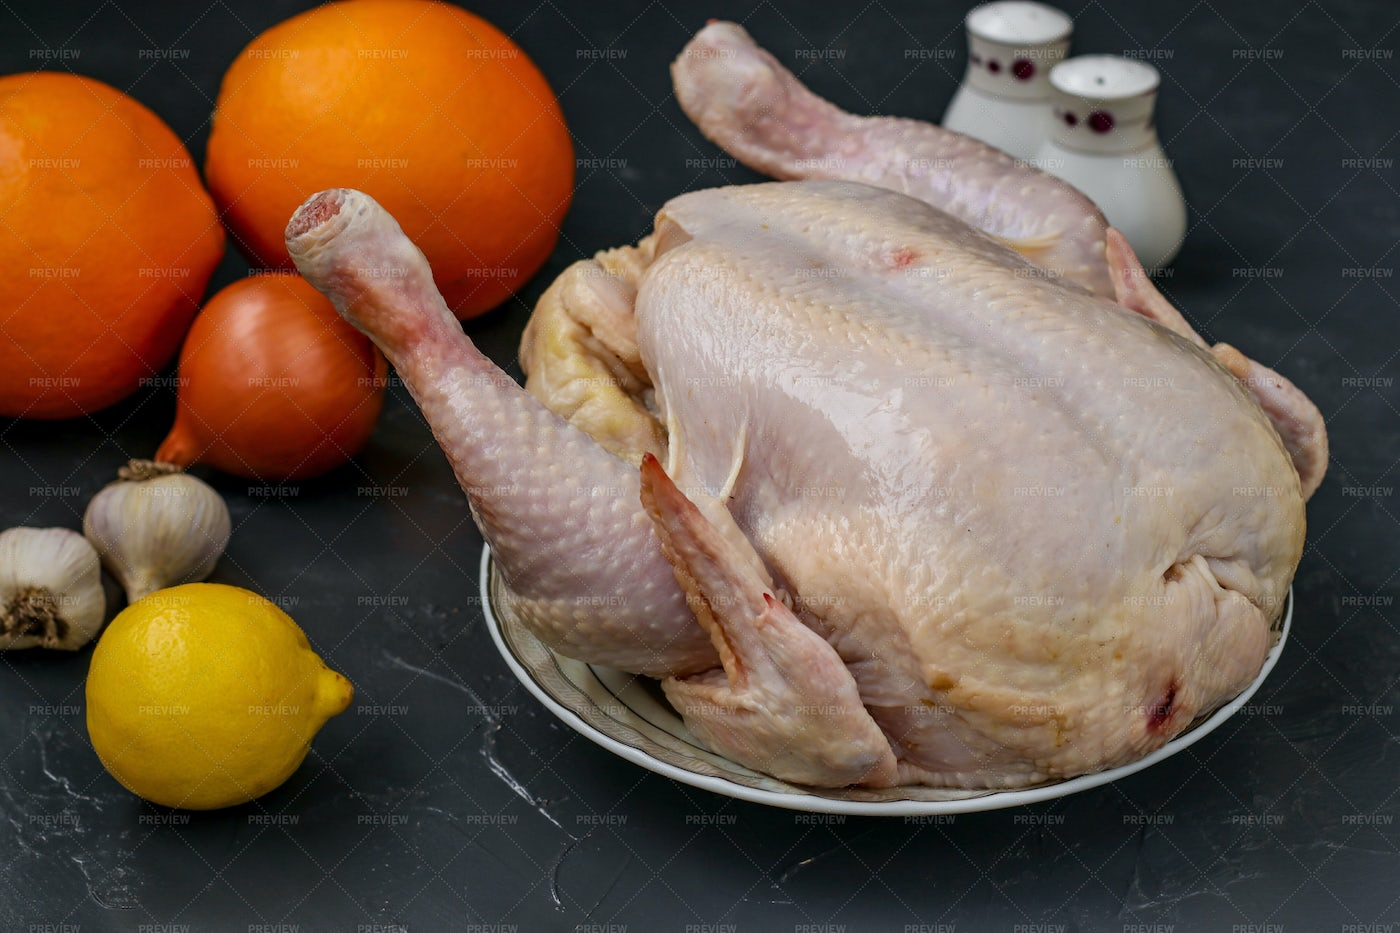 Raw Chicken Prepared For Baking: Stock Photos